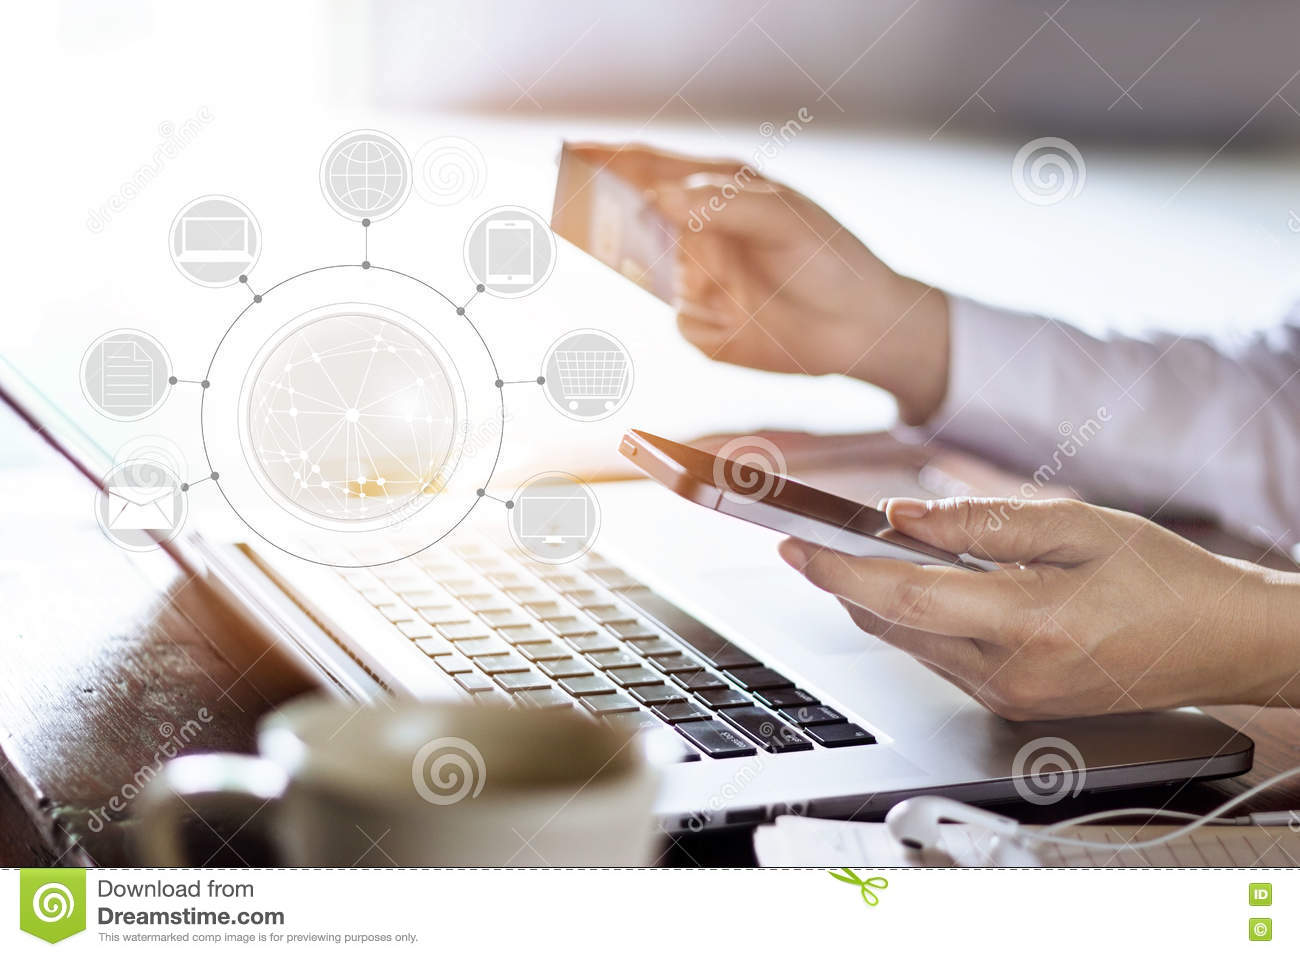 Man using mobile payments online shopping and icon customer network connection on screen